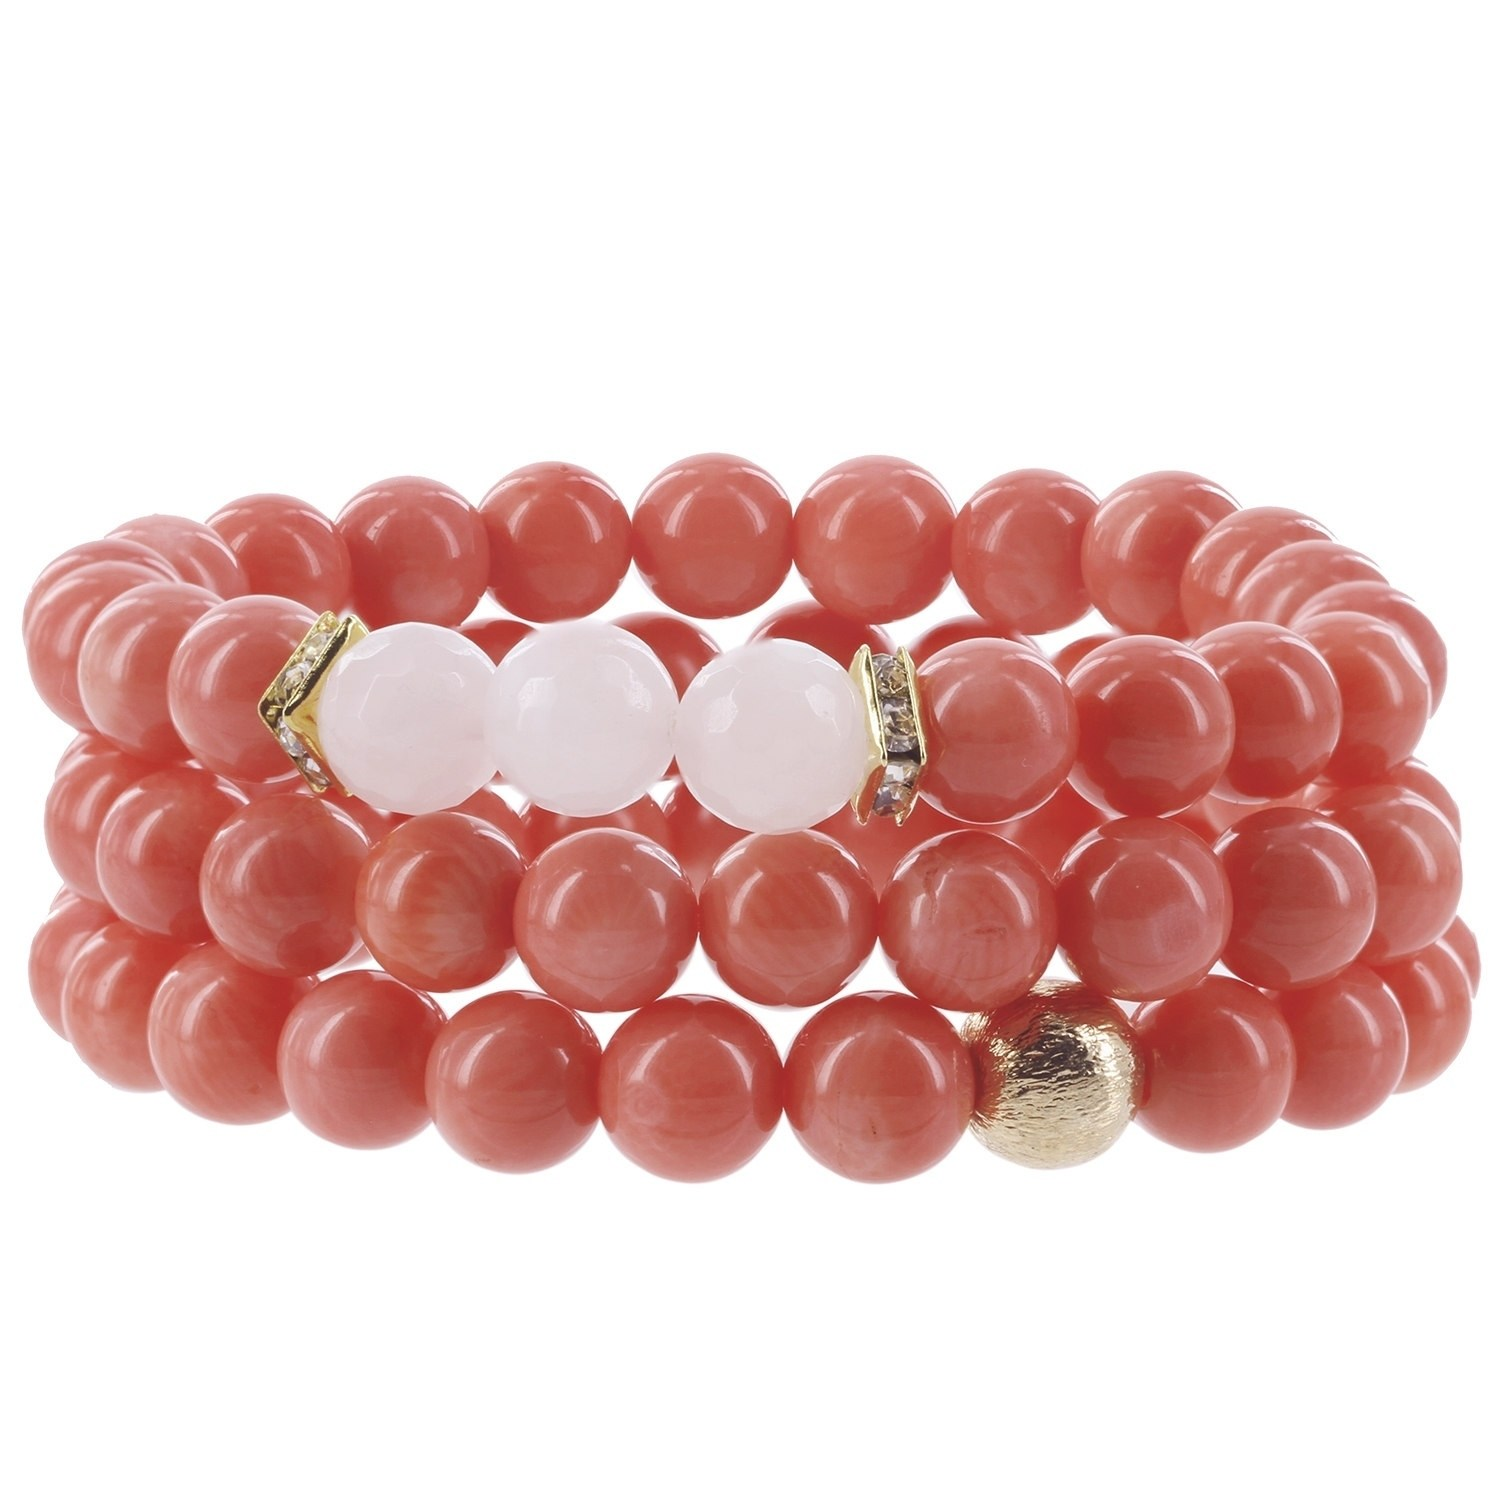 Fox and Baubles Eco-friendly Coral, Rose Quartz, Brass Bead and Crystal Spacers Beaded Stretch Bracelets (Set of 3) by Overstock